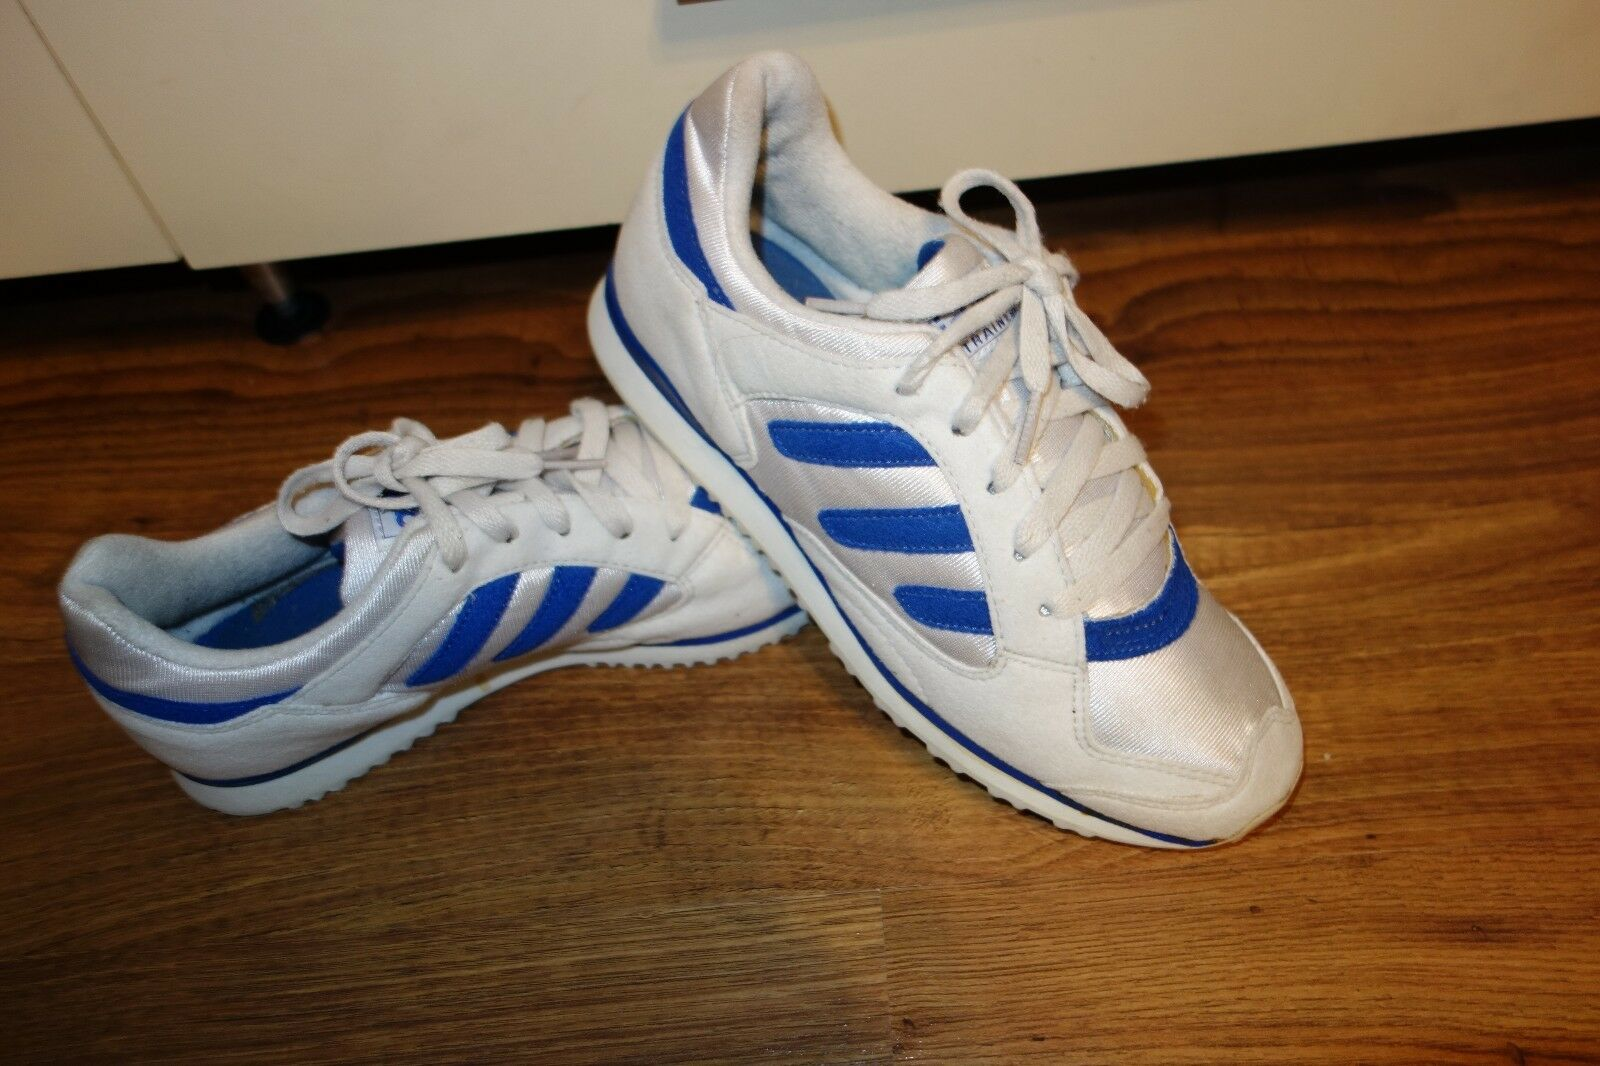 VINTAGE '94 ADIDAS TECH TRAINER 036888 UK 6, EU 39.5  VERY GOOD CONDITION